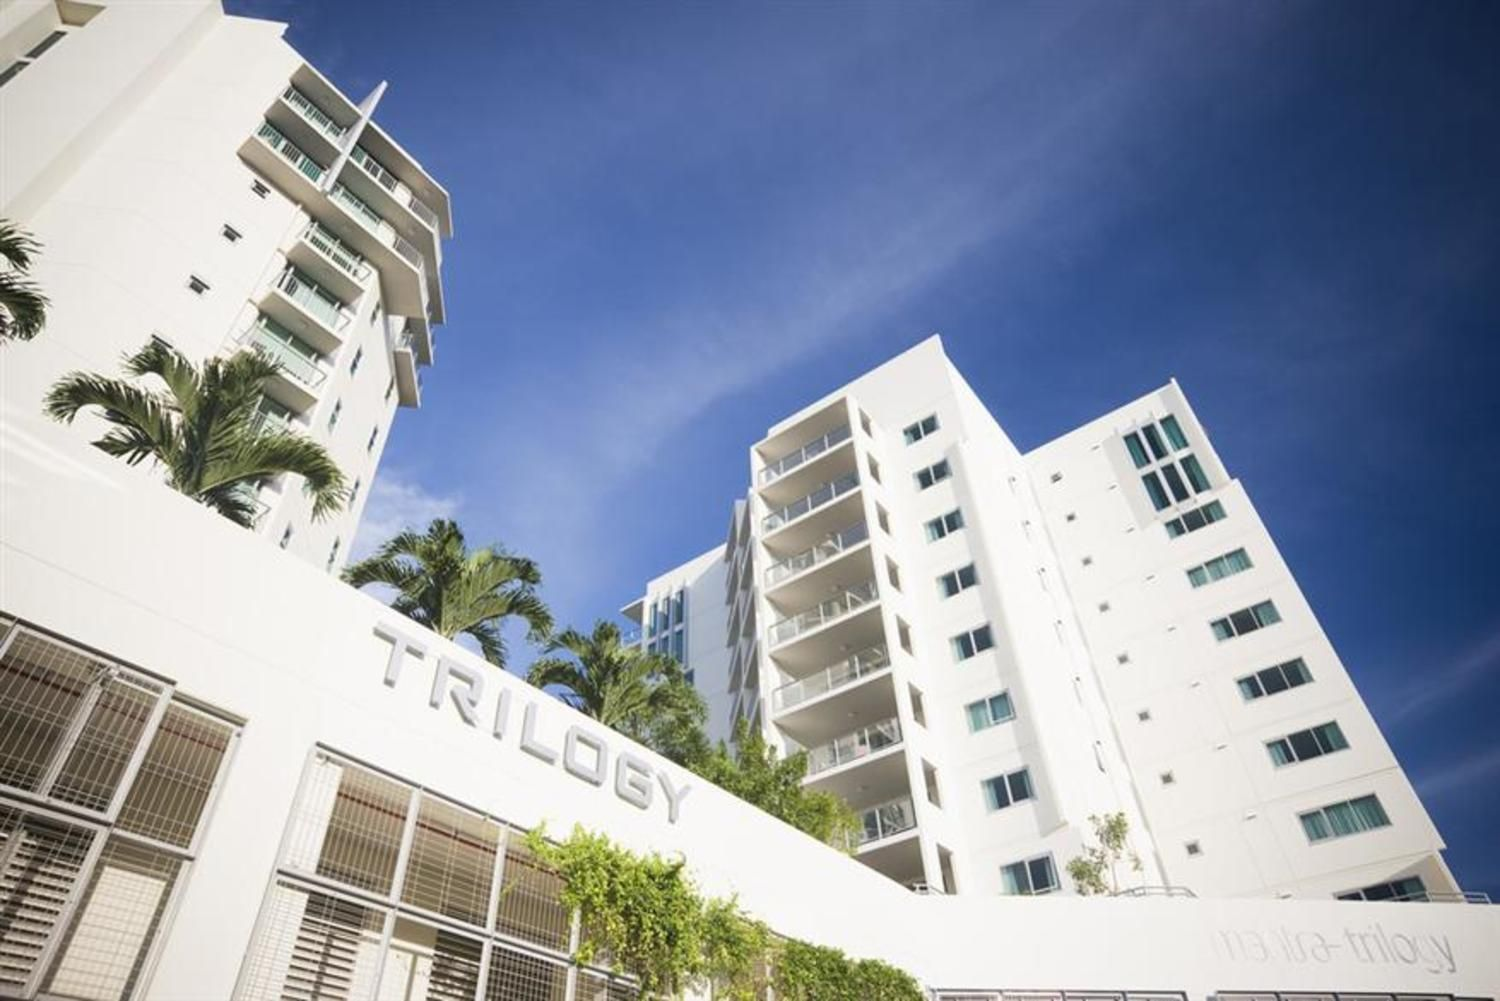 Apartment for rent in Cairns ID 5685 | Hausples.com.pg